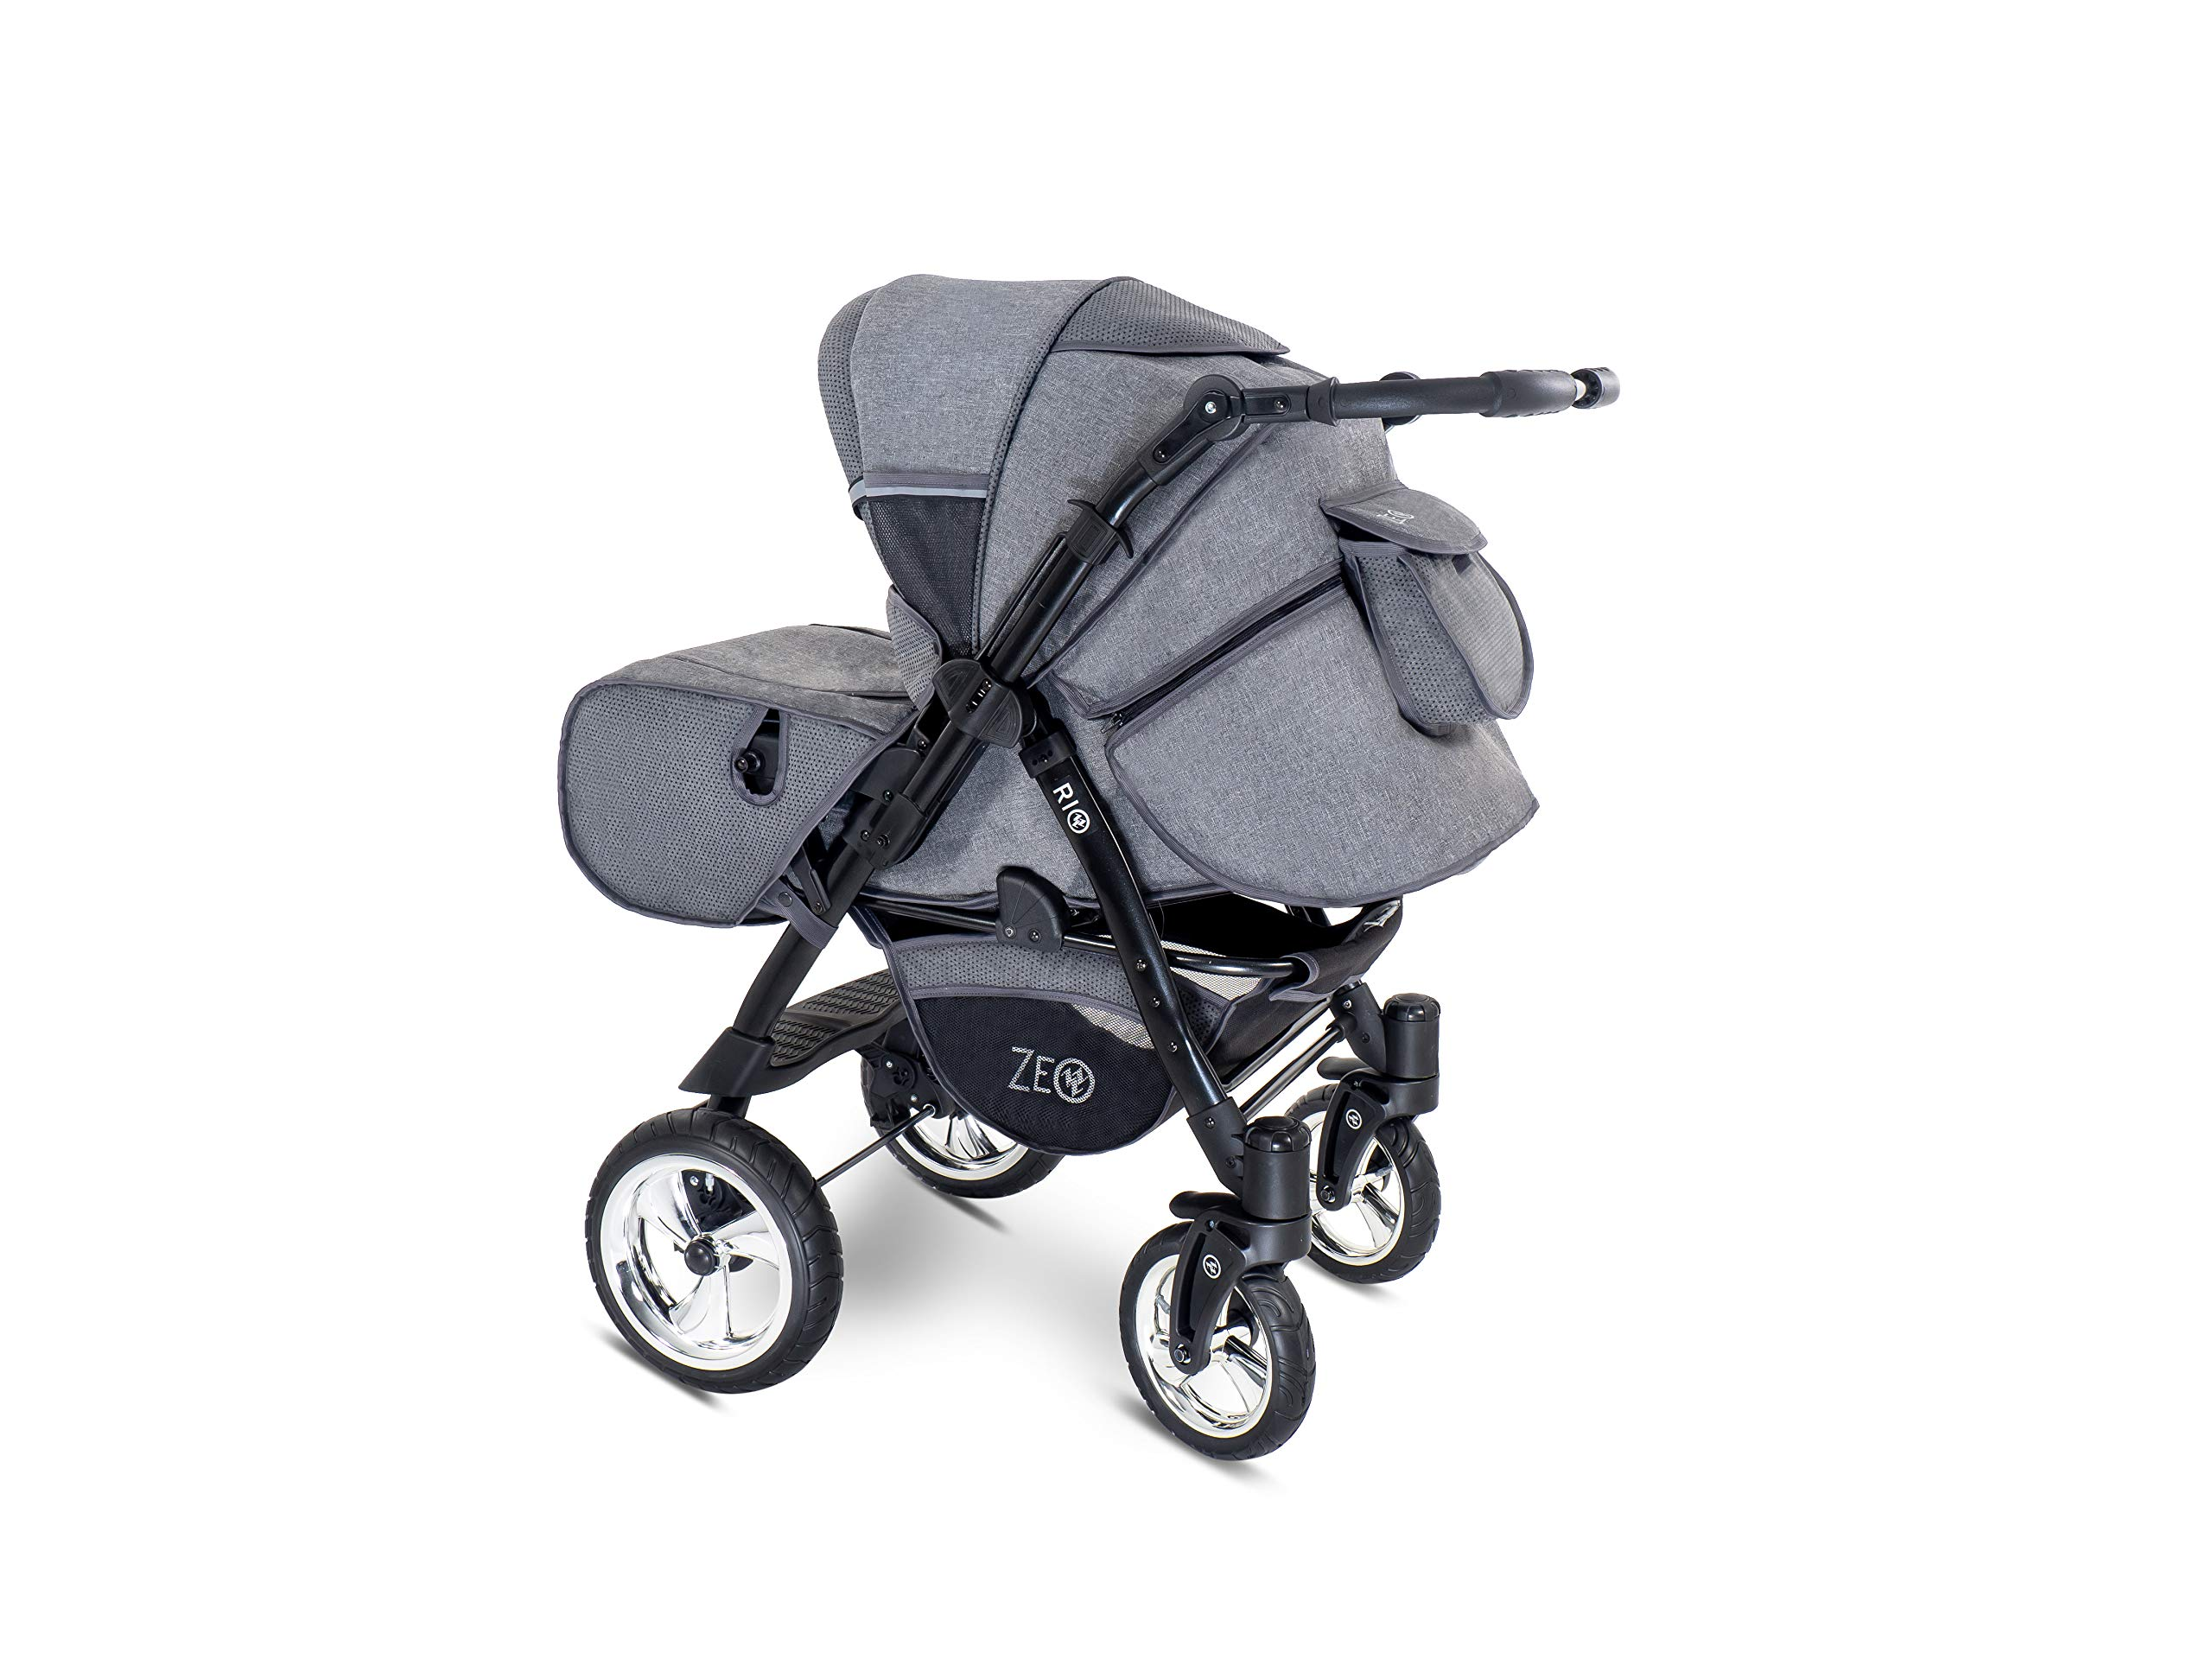 Baby Pram Zeo Rio 3in1 Set - All You Need! carrycot Gondola Buggy Pushchair car seat (R3) Zeo 3 in 1 combination stroller complete set, with reversible handle to the buggy, child car seat or baby carriage Has 360 ° swiveling wheels, two-fold suspension, four-stage backrest, five-position adjustable footrest and a five-point safety belt The stroller can be easily converted into other functions and easy to transport 4